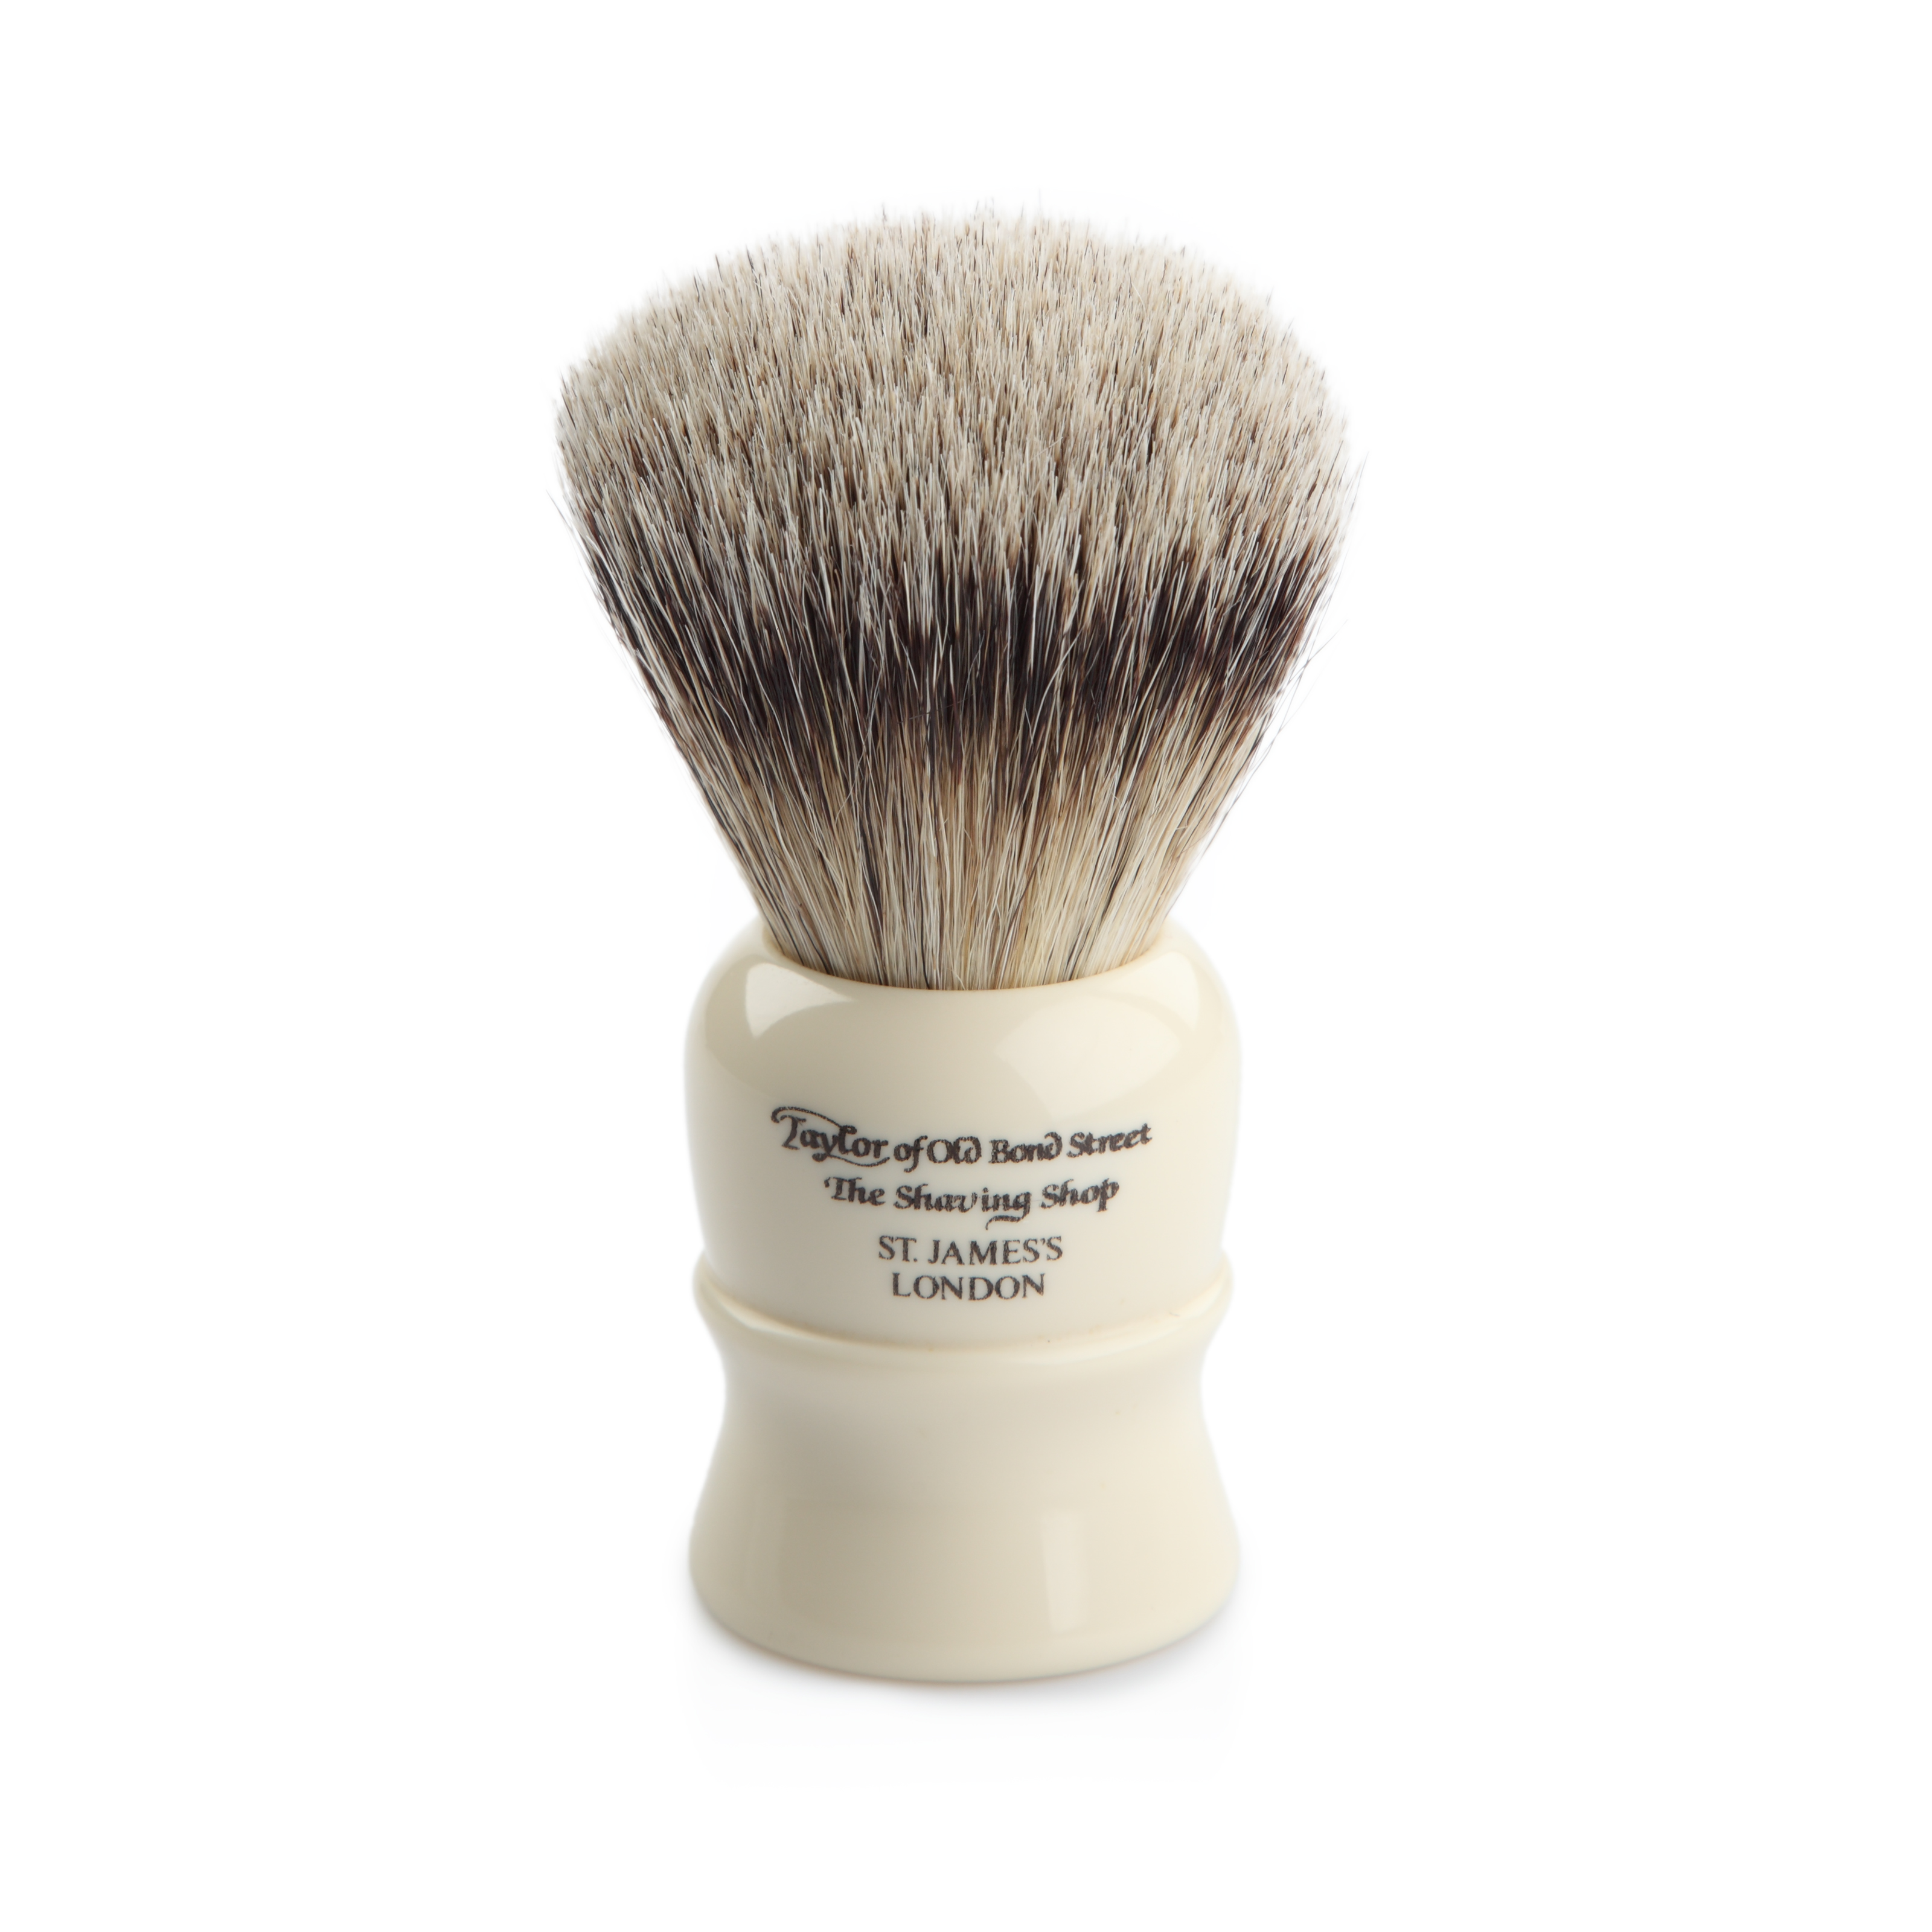 Помазок для бритья Супер Барсук Very Large Super Badger Shaving Brush 13см